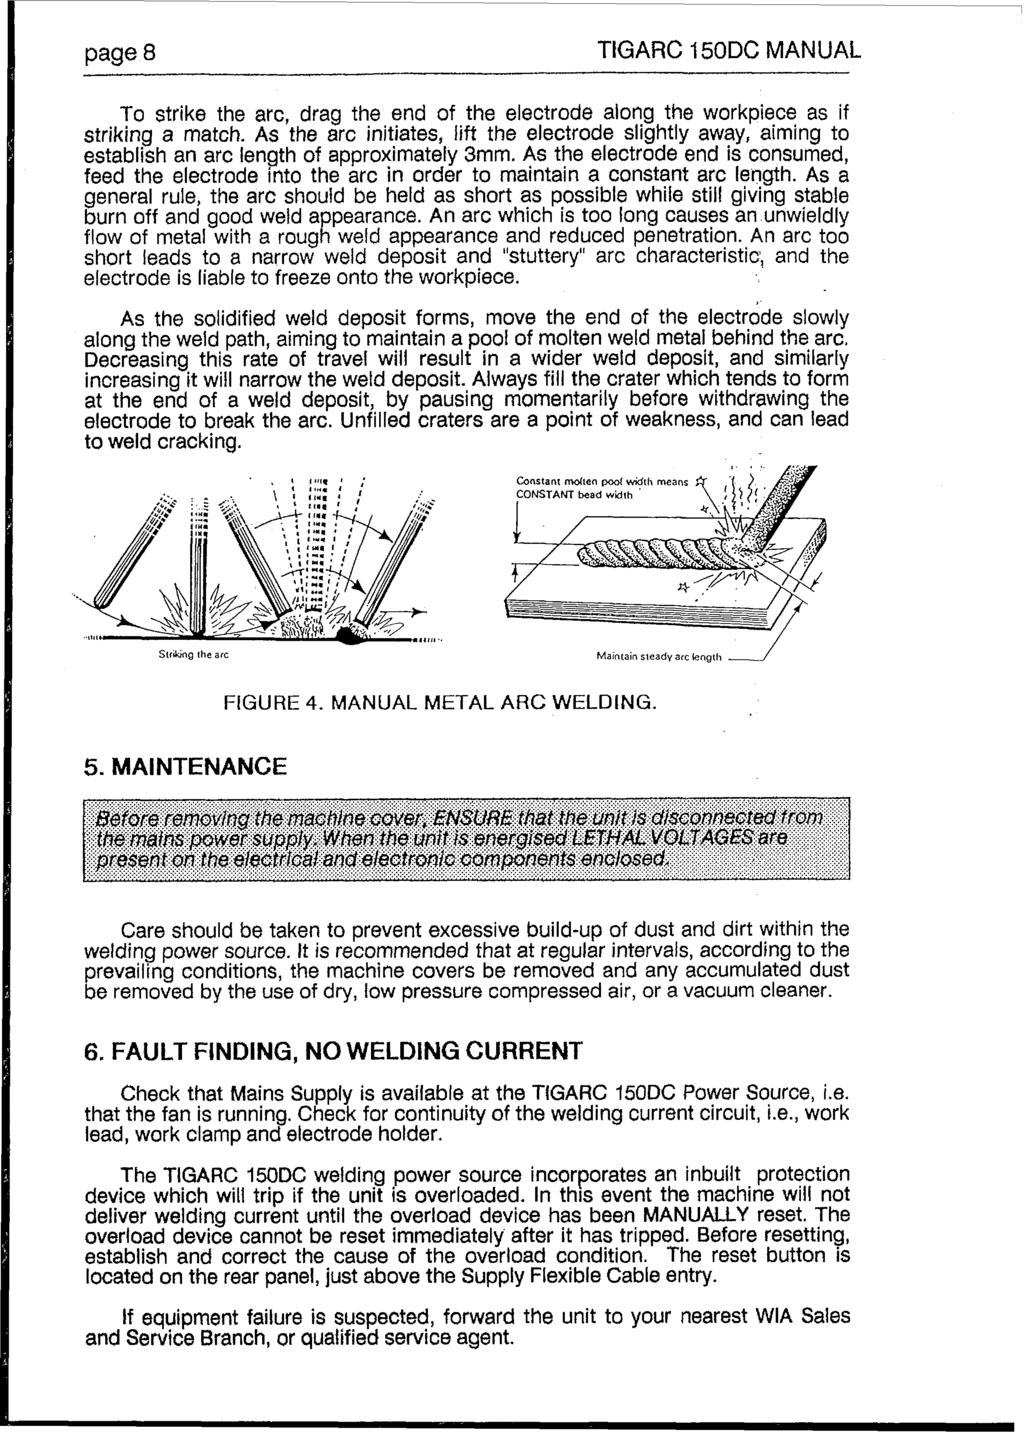 Model No Mc86 2 Rev C Pdf Mig Welding Machine Diagram Together With Of Fillet Weld Root Page 8 Tigarc F50dc Manual To Strike Thearcdragthe End The Electrode Along